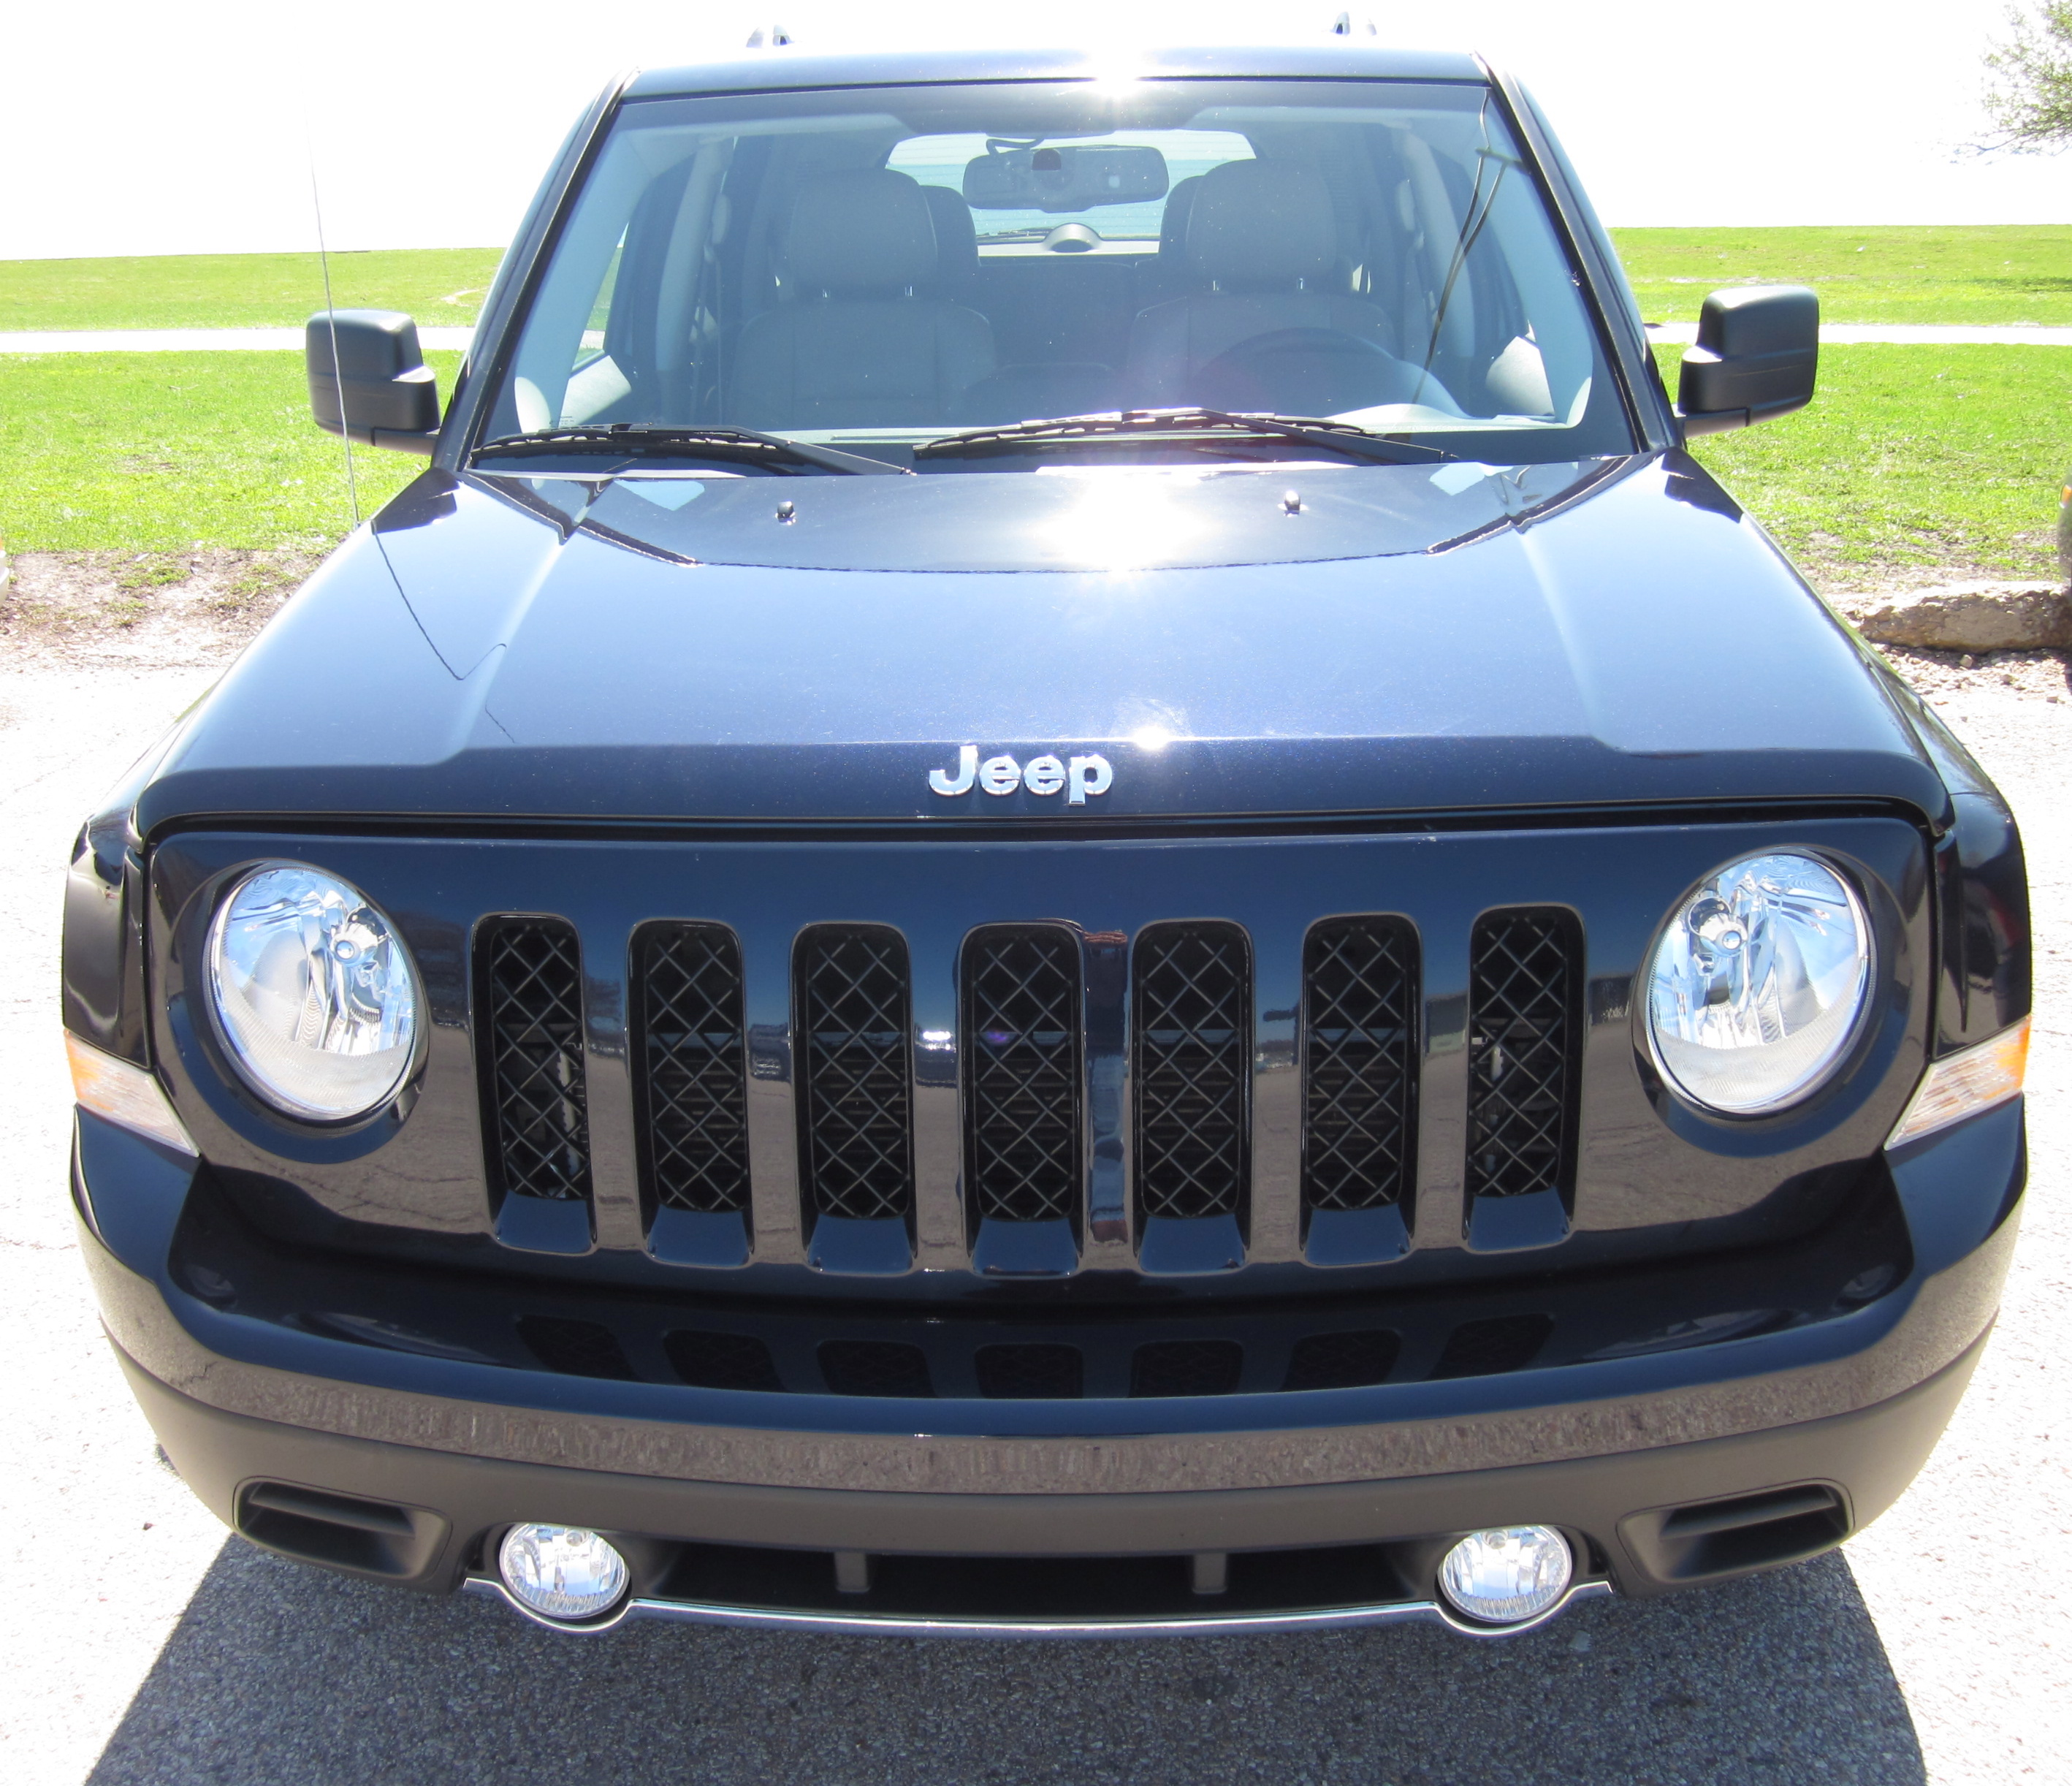 2011 Jeep Patriot Review And Roadtest